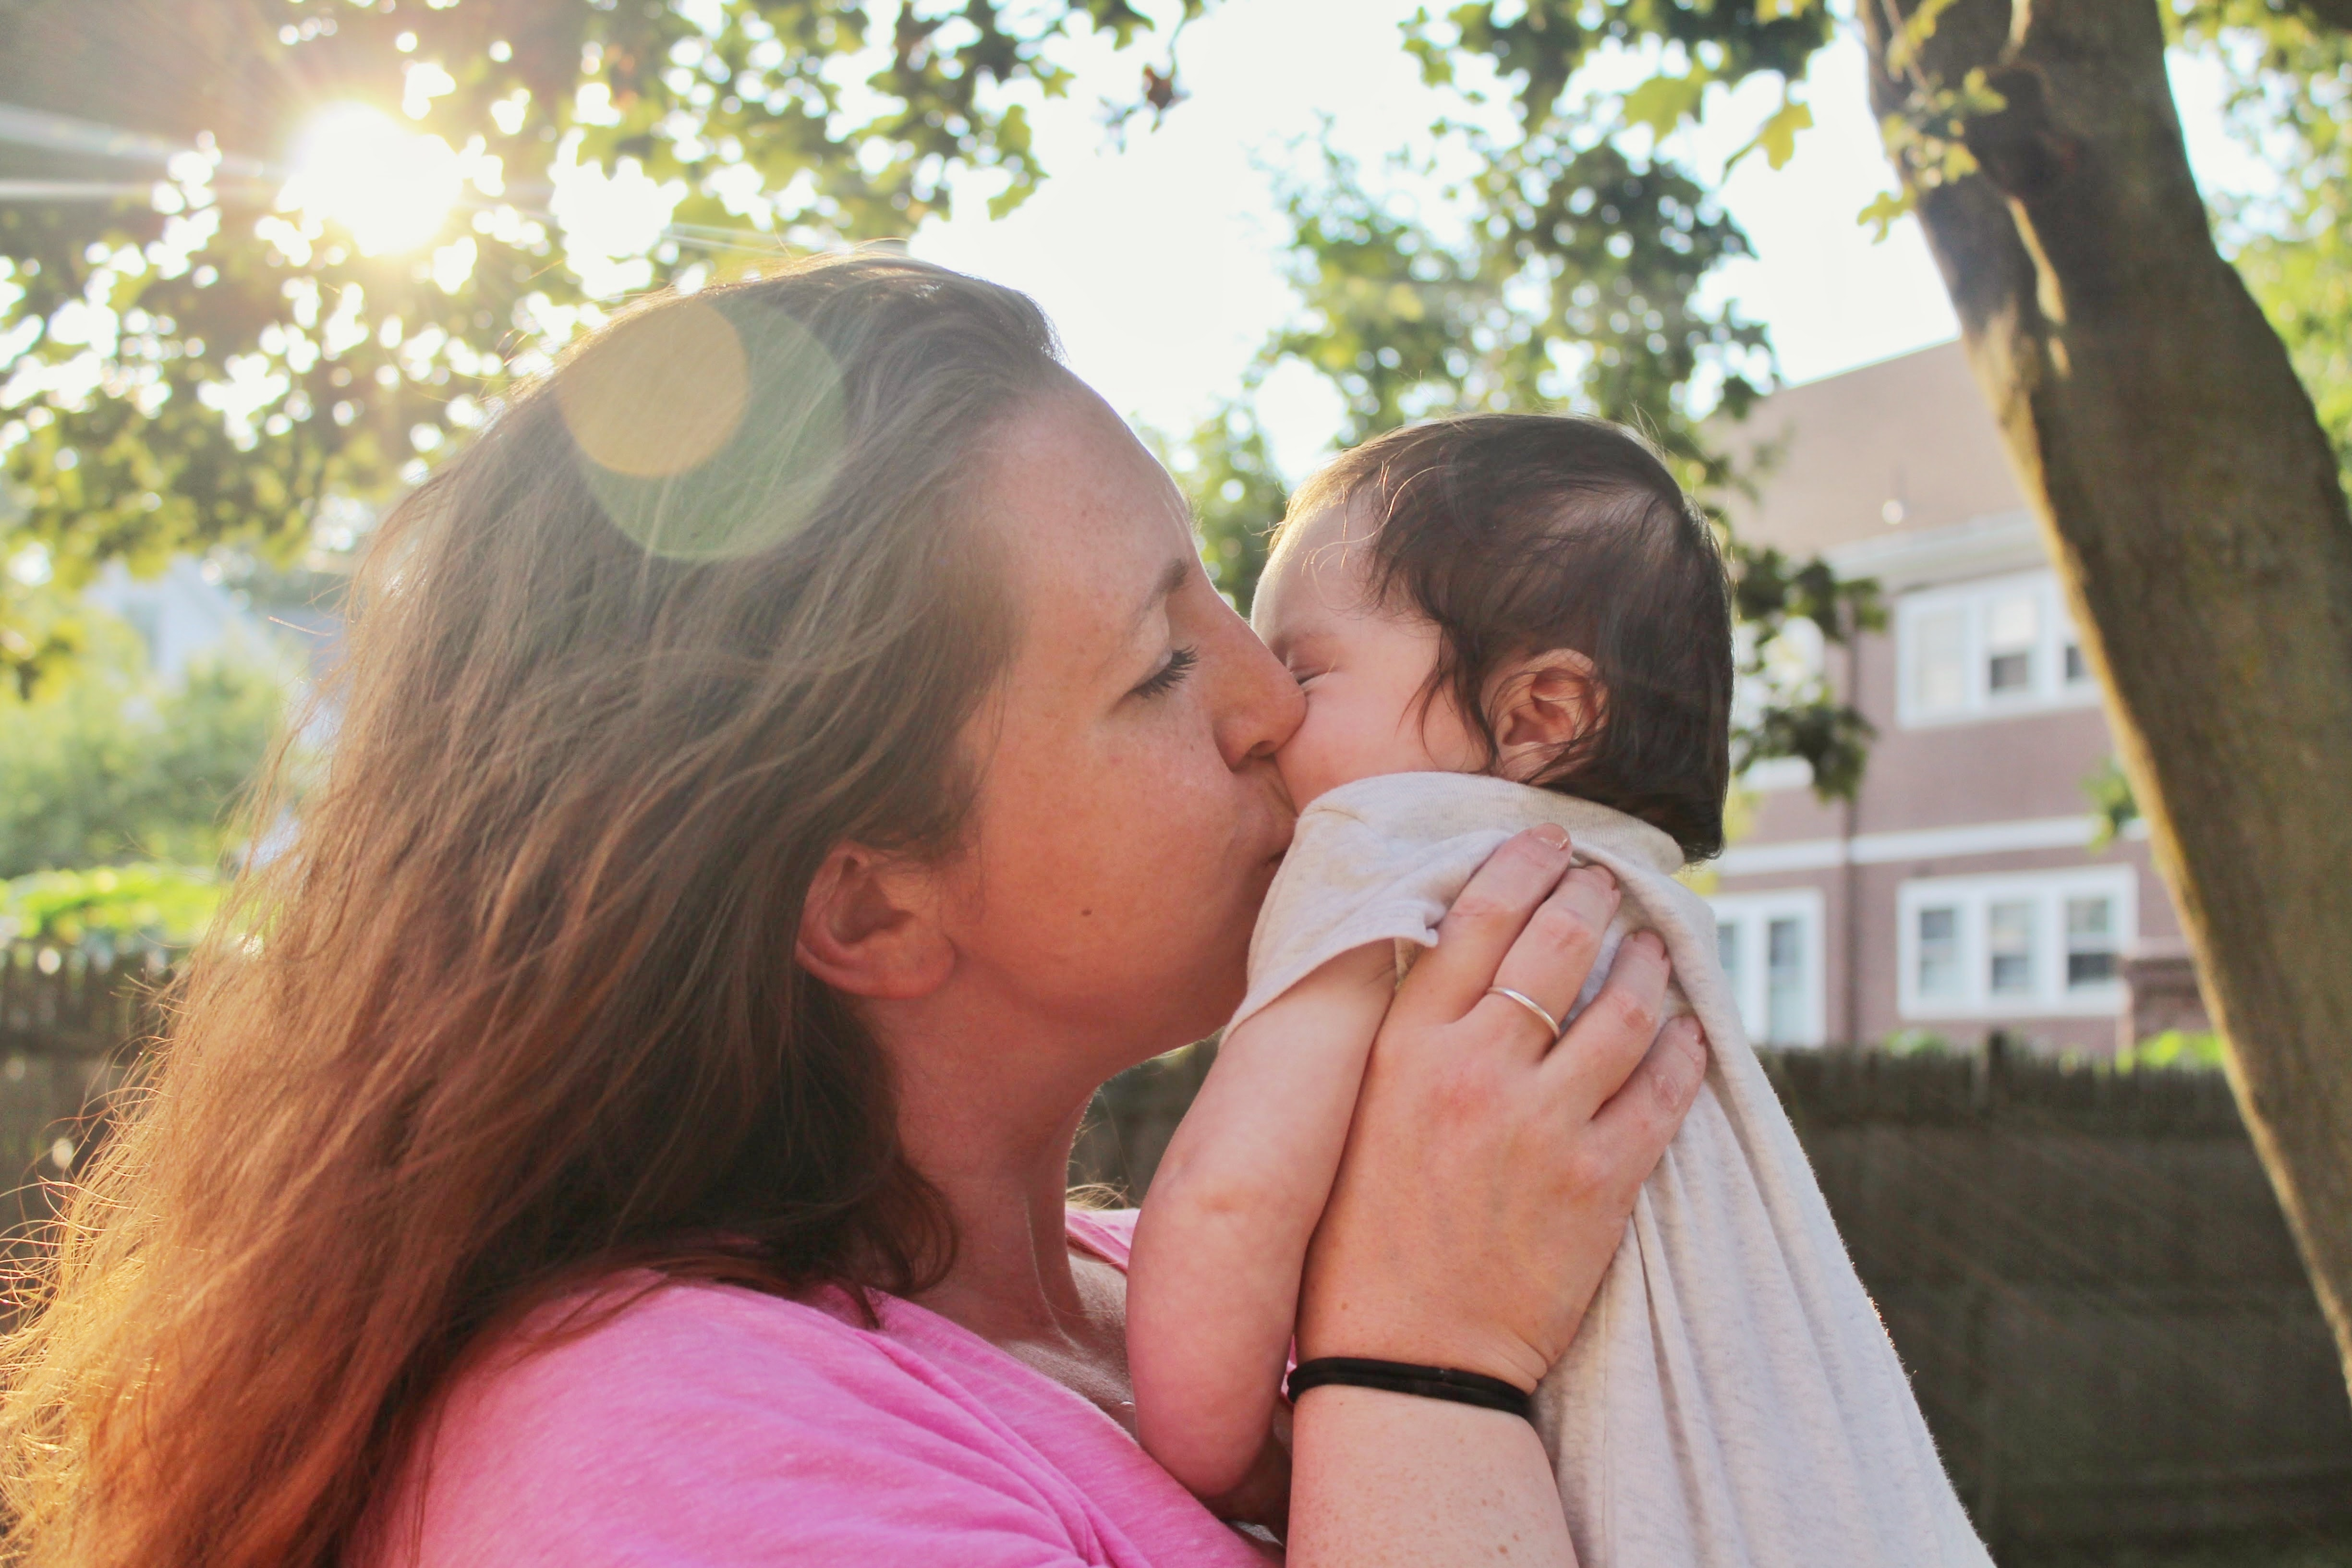 A woman kissing an infant on the cheek.